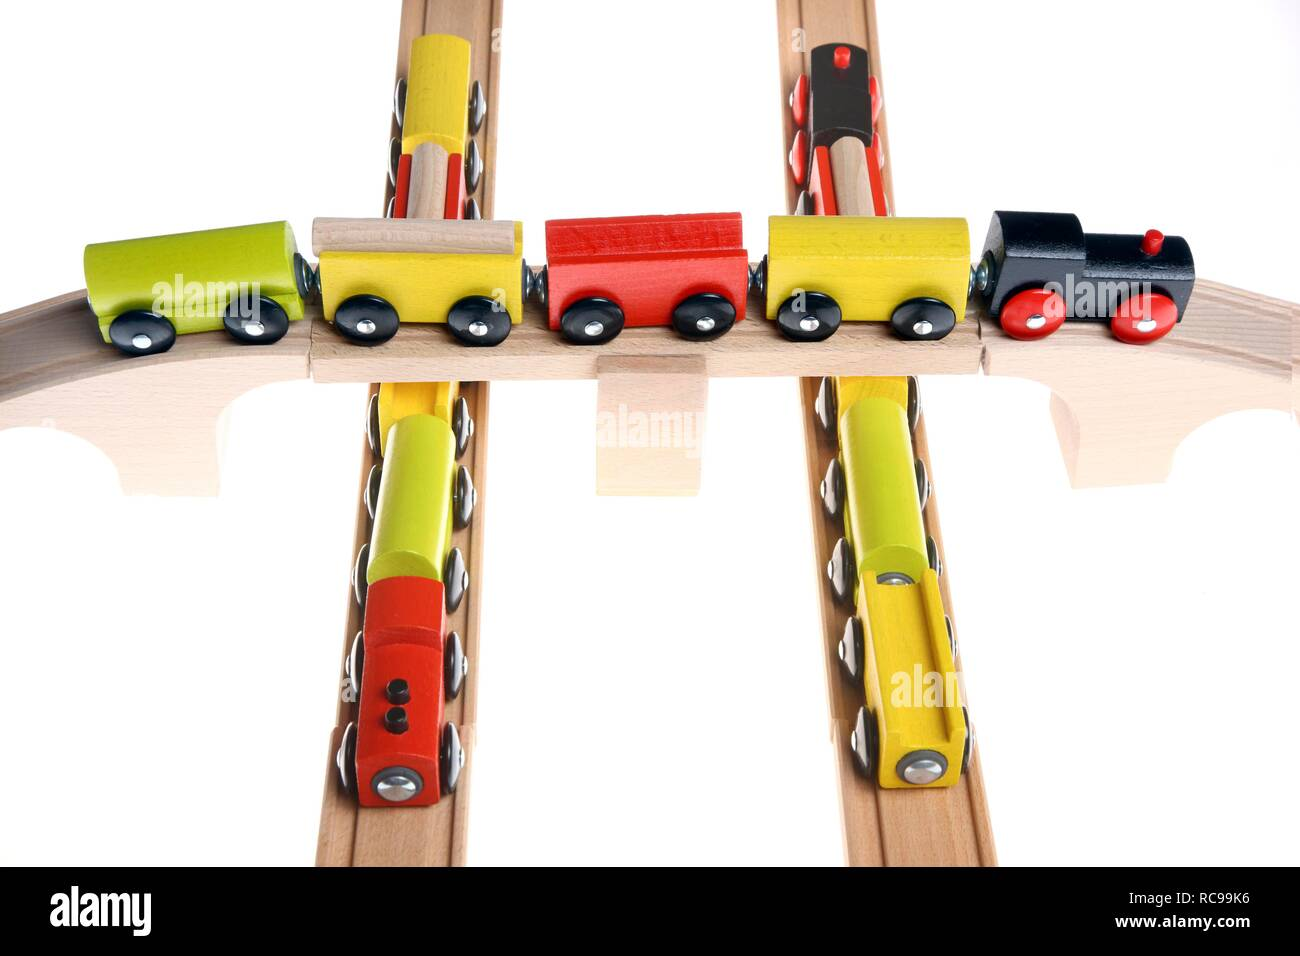 Train Crossing Wooden Bridge Stock Photos & Train Crossing